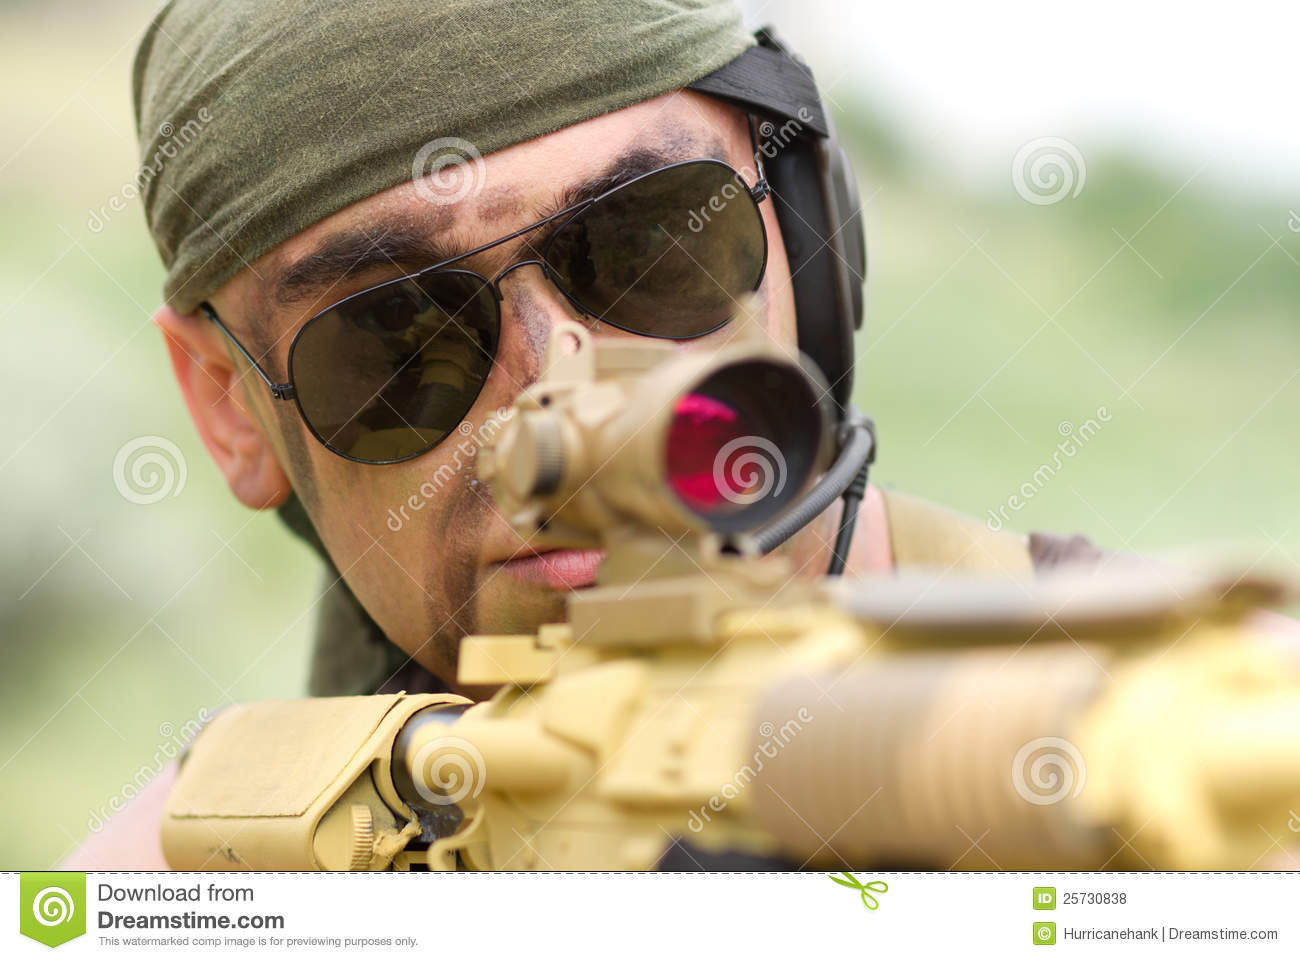 Soldier in sunglasses targeting